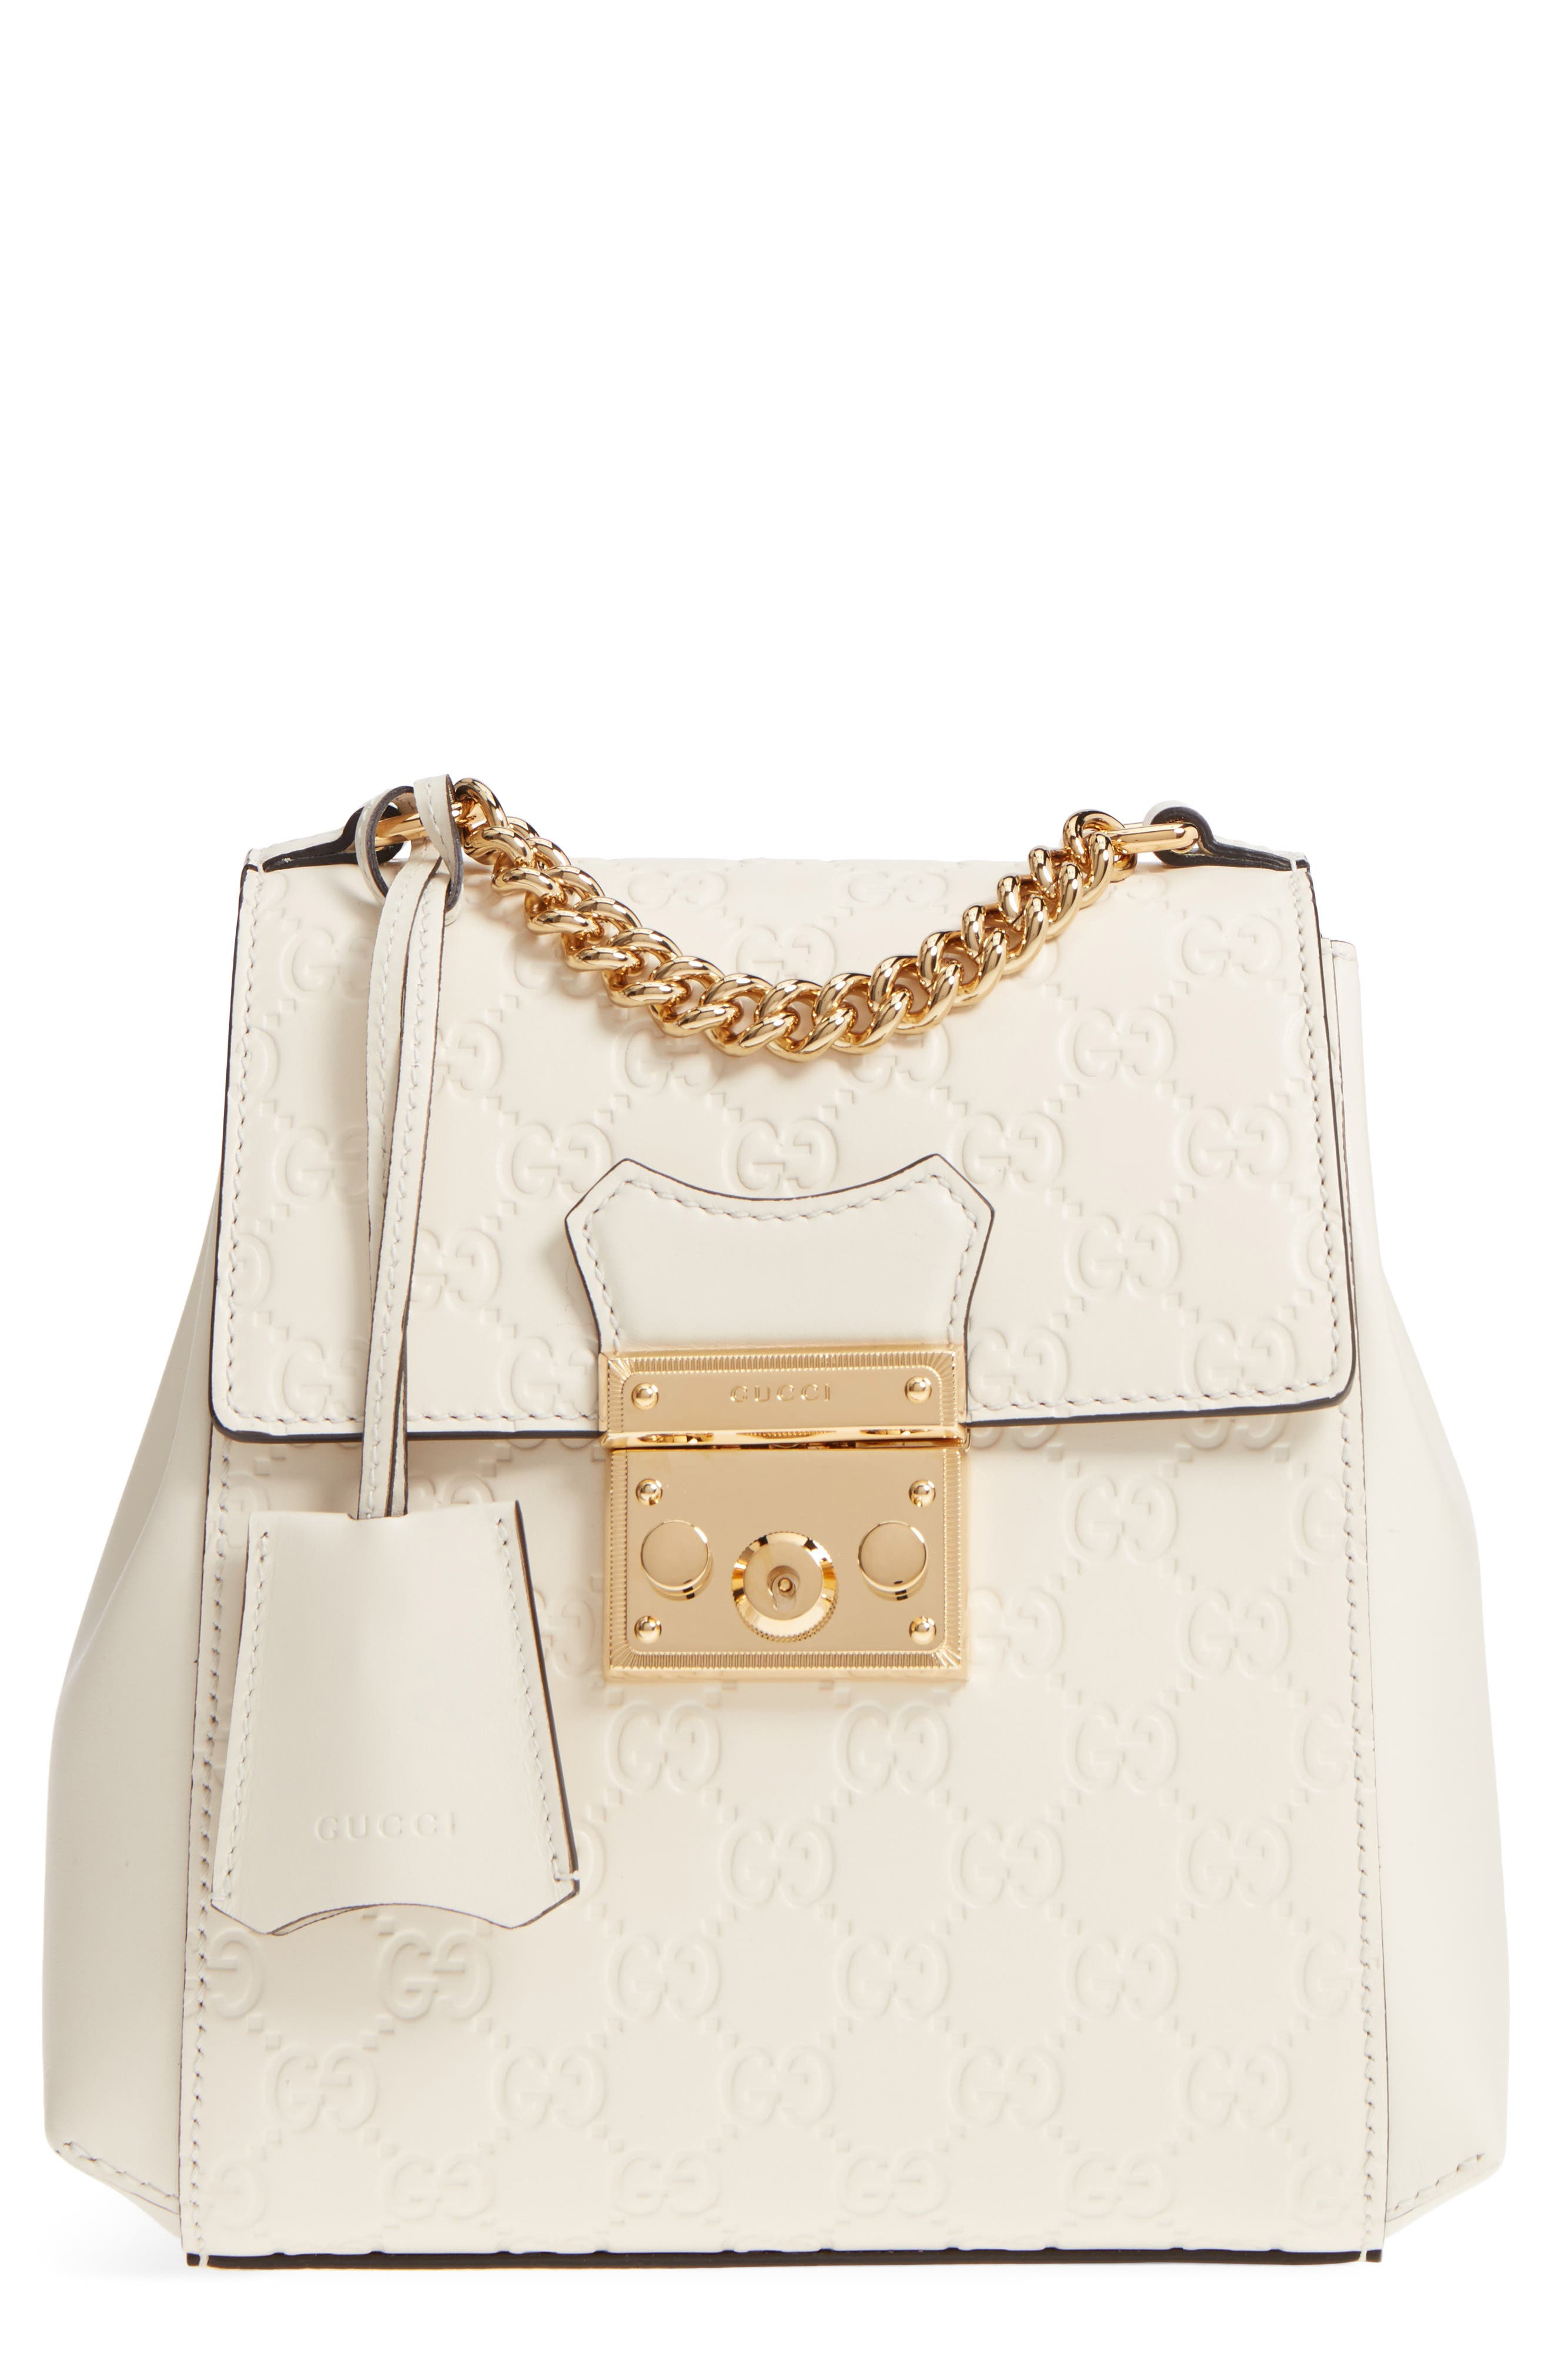 GG Supreme Leather Padlock Backpack,                         Main,                         color, MYSTIC WHITE/ MYSTIC WHITE